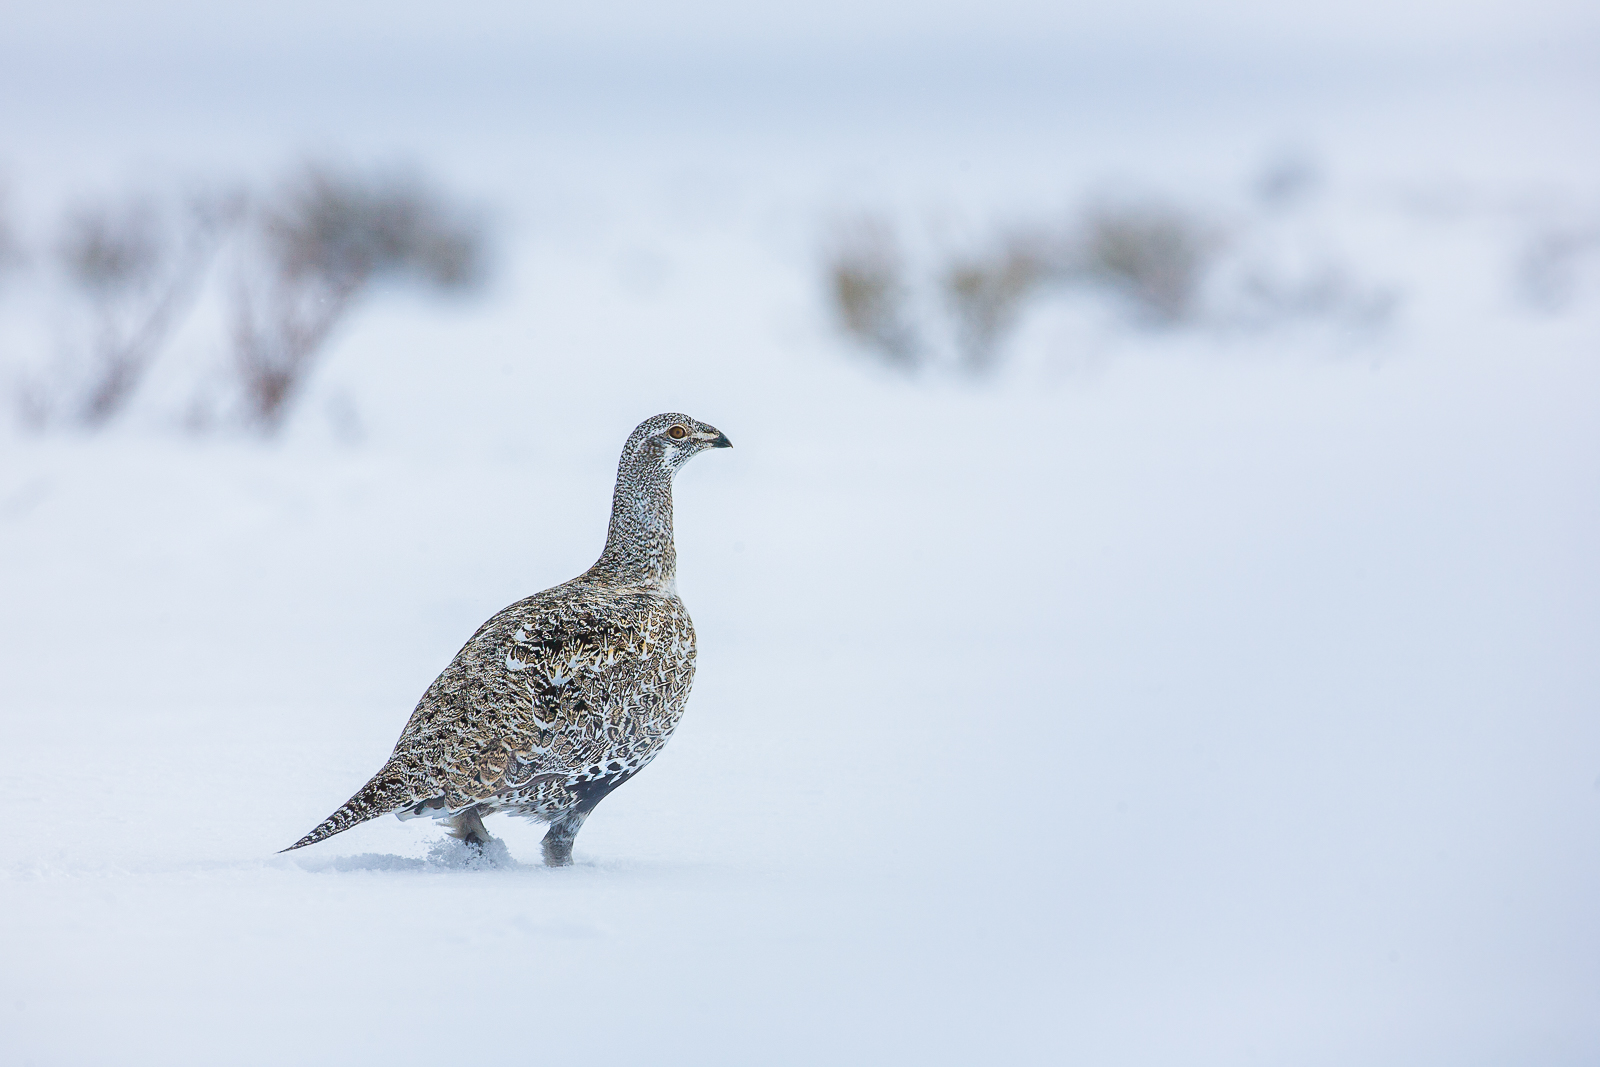 Winter Walk,Grand Teton National Park, Greater Sage-Grouse, Snow, Upland Game Birds, Wildlife, Winter, photo